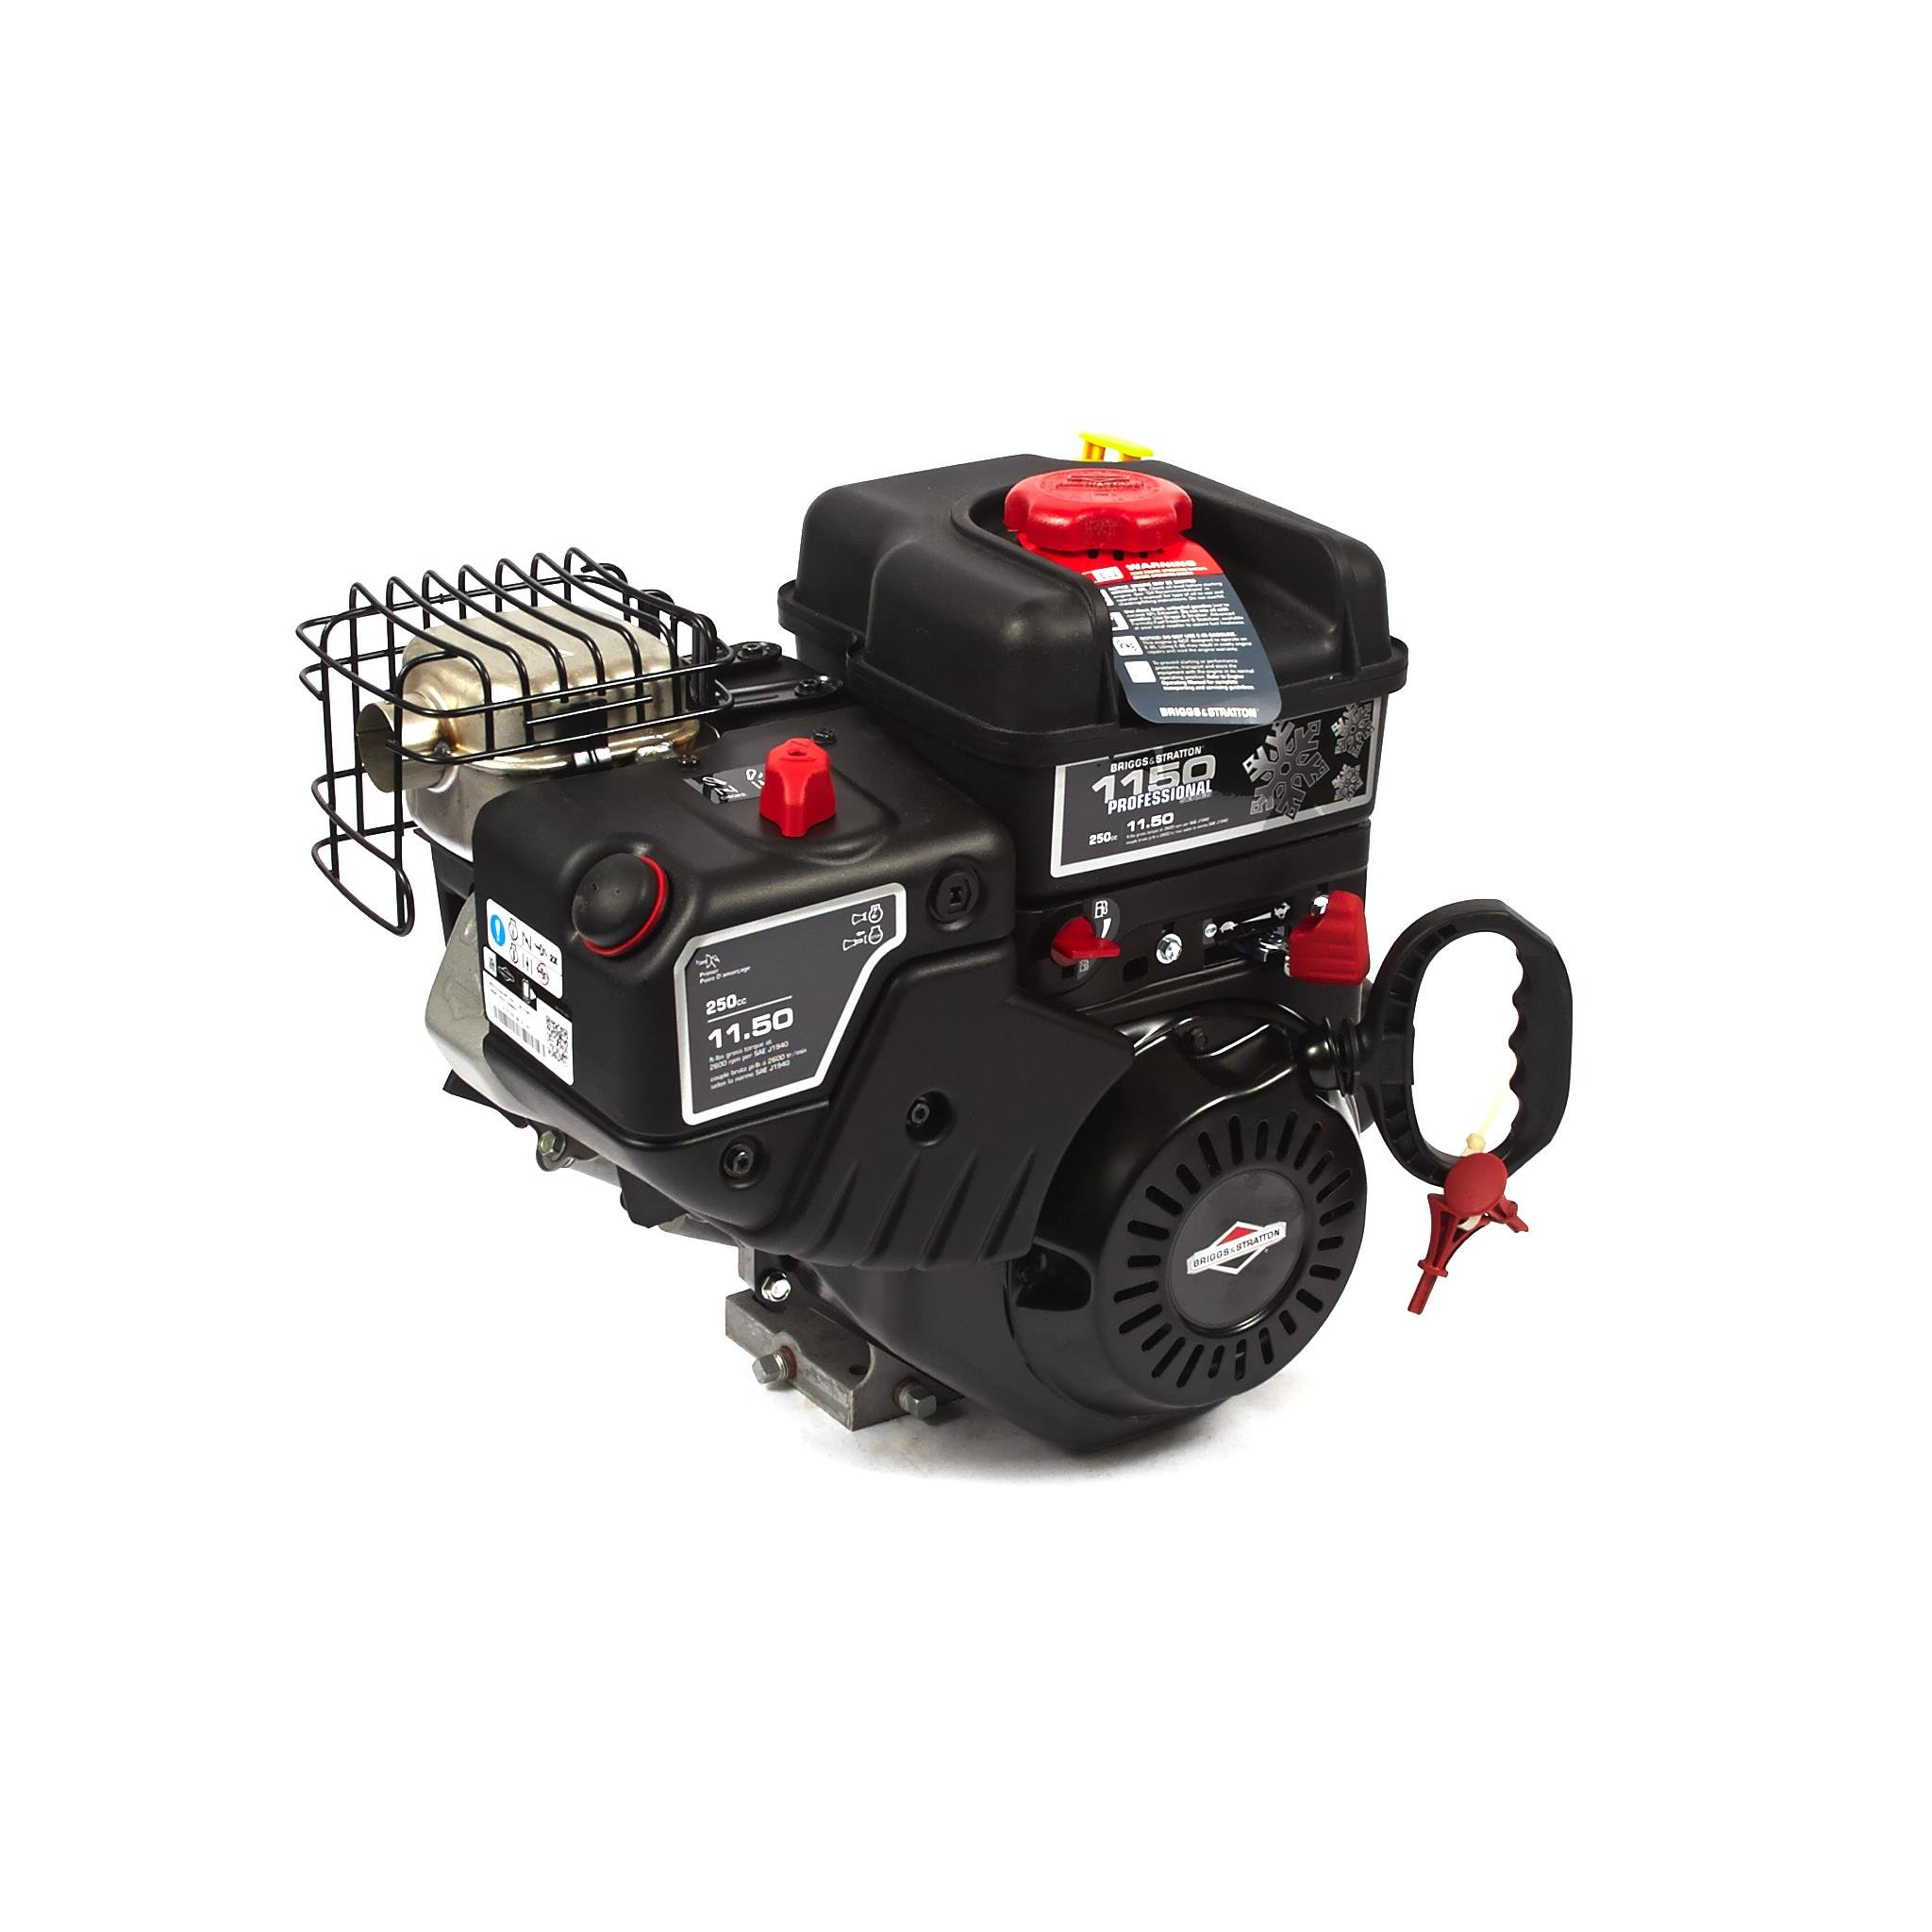 Briggs and Stratton 15C107-0019-F8 1150 Series Professional Snow Engine by Briggs & Stratton